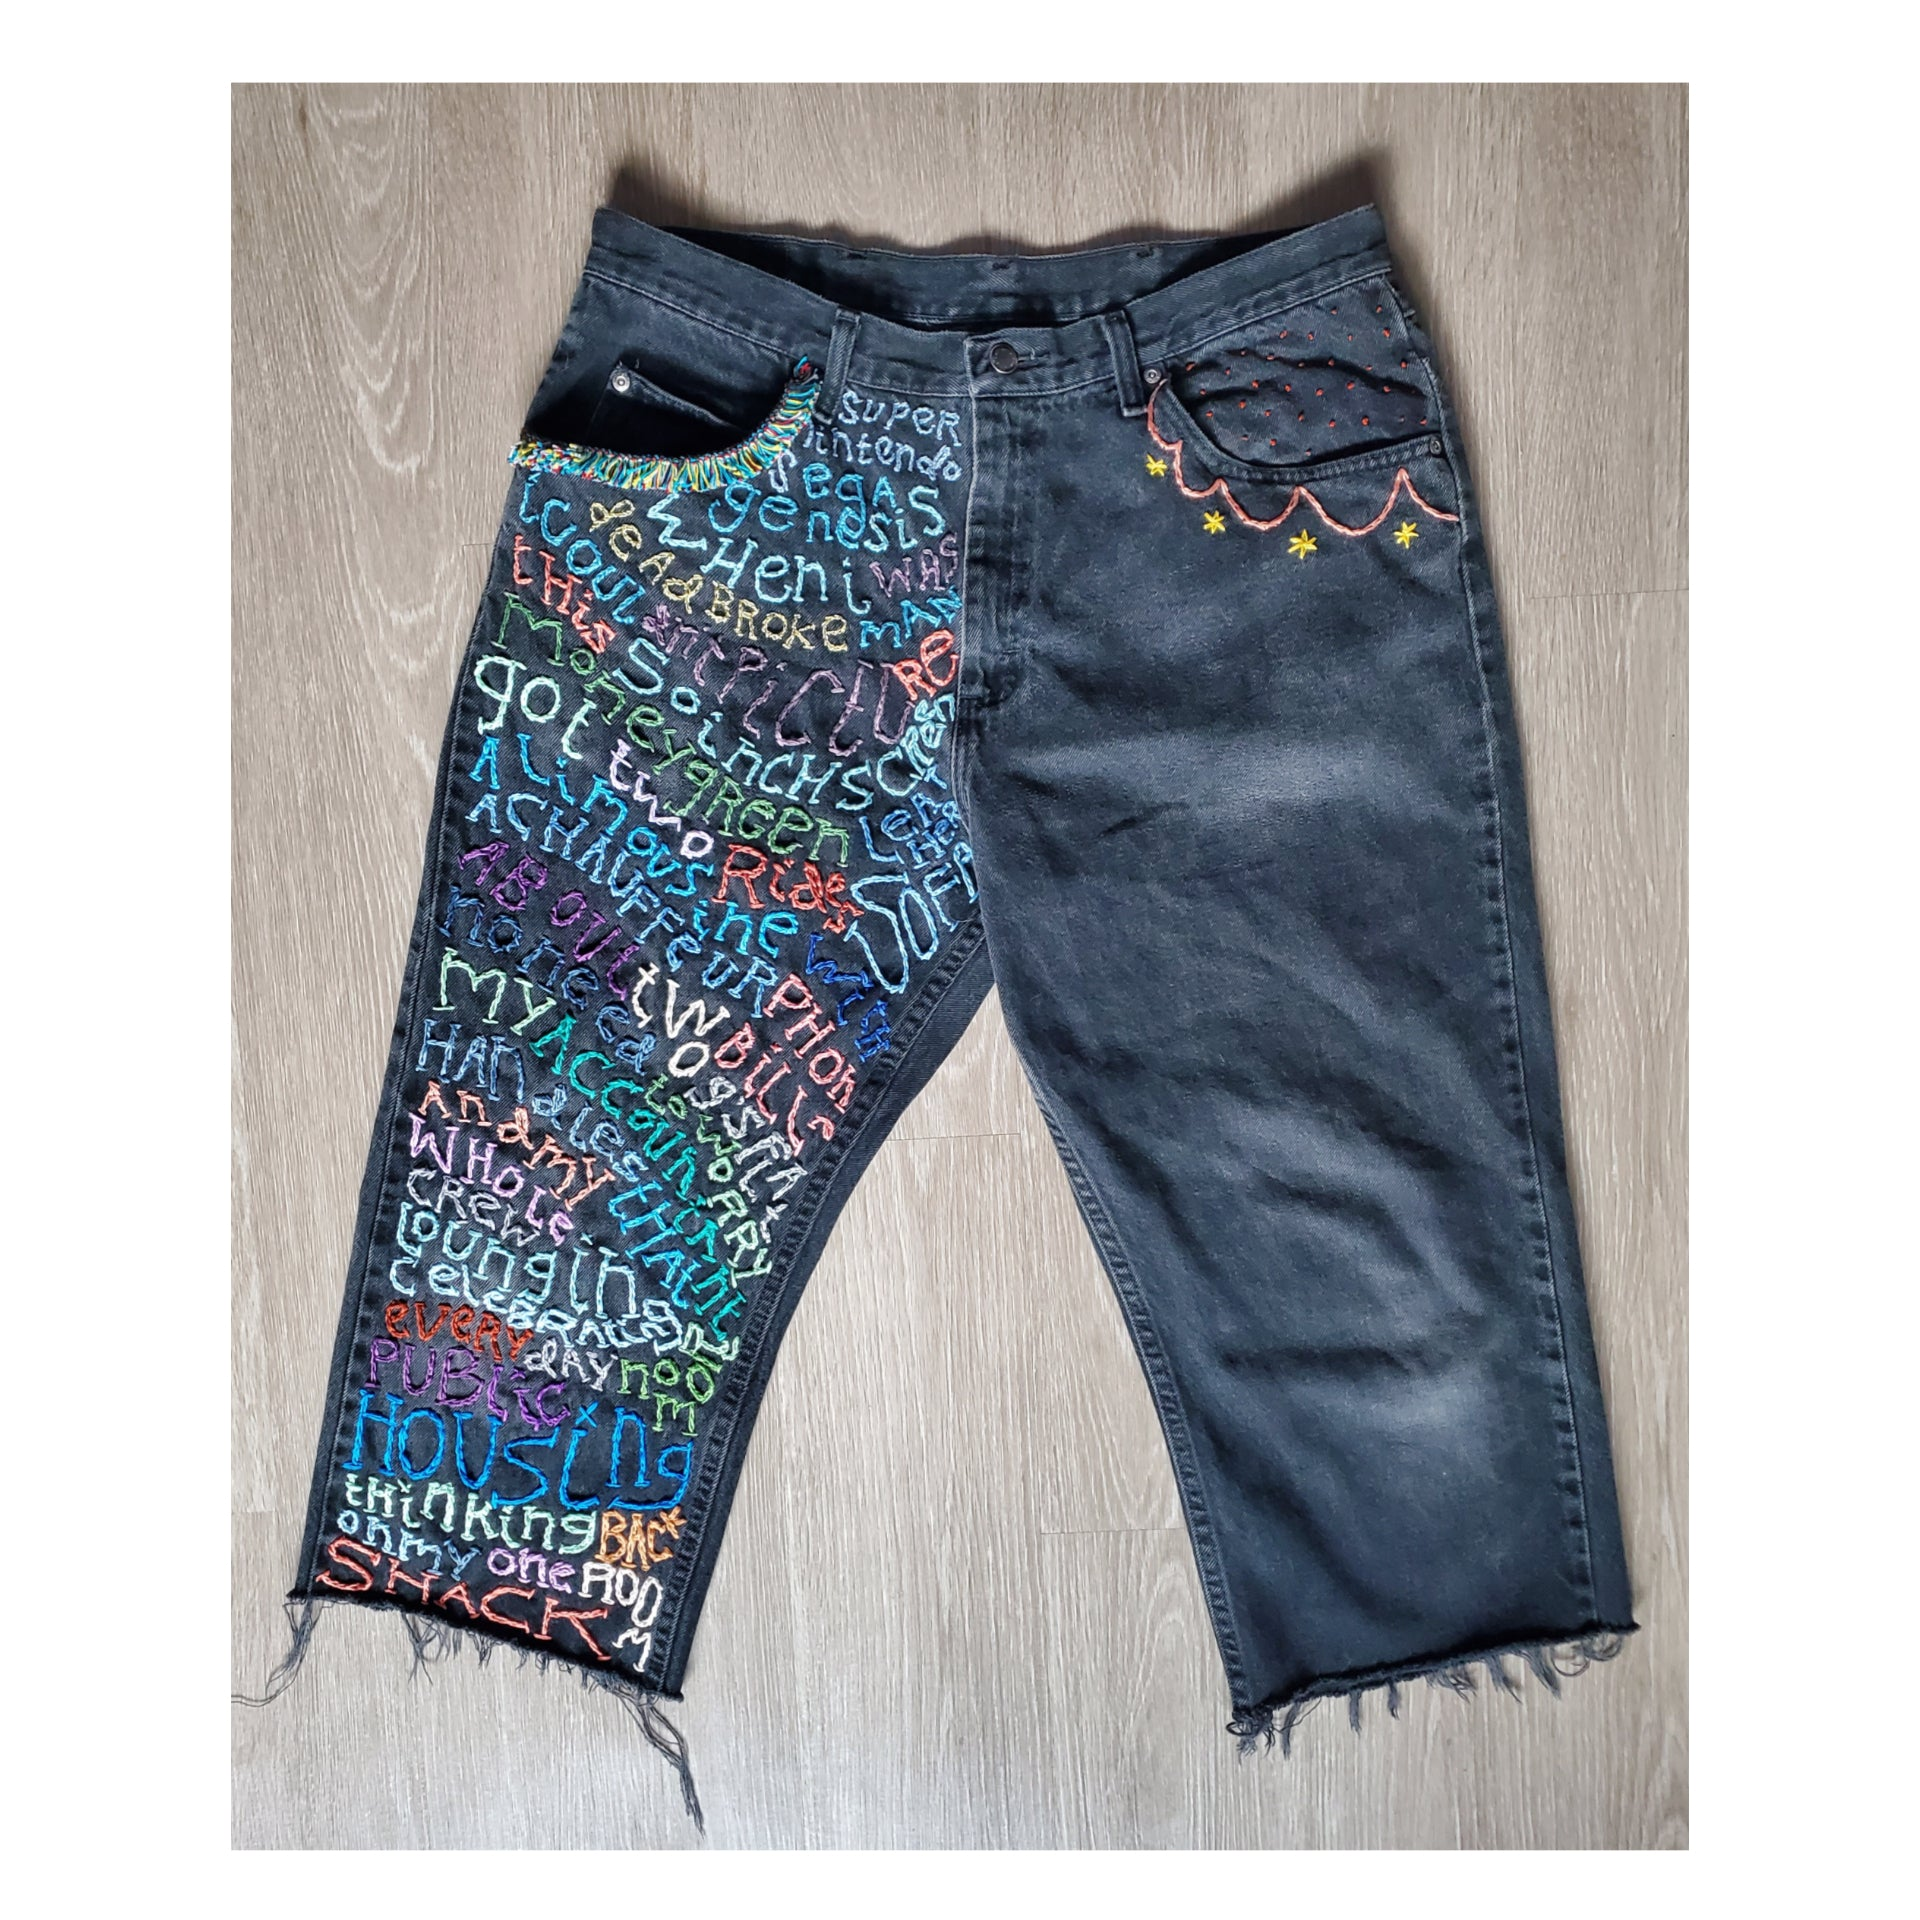 Hand Embroidered Artwear Jeans by Becky Bacsik